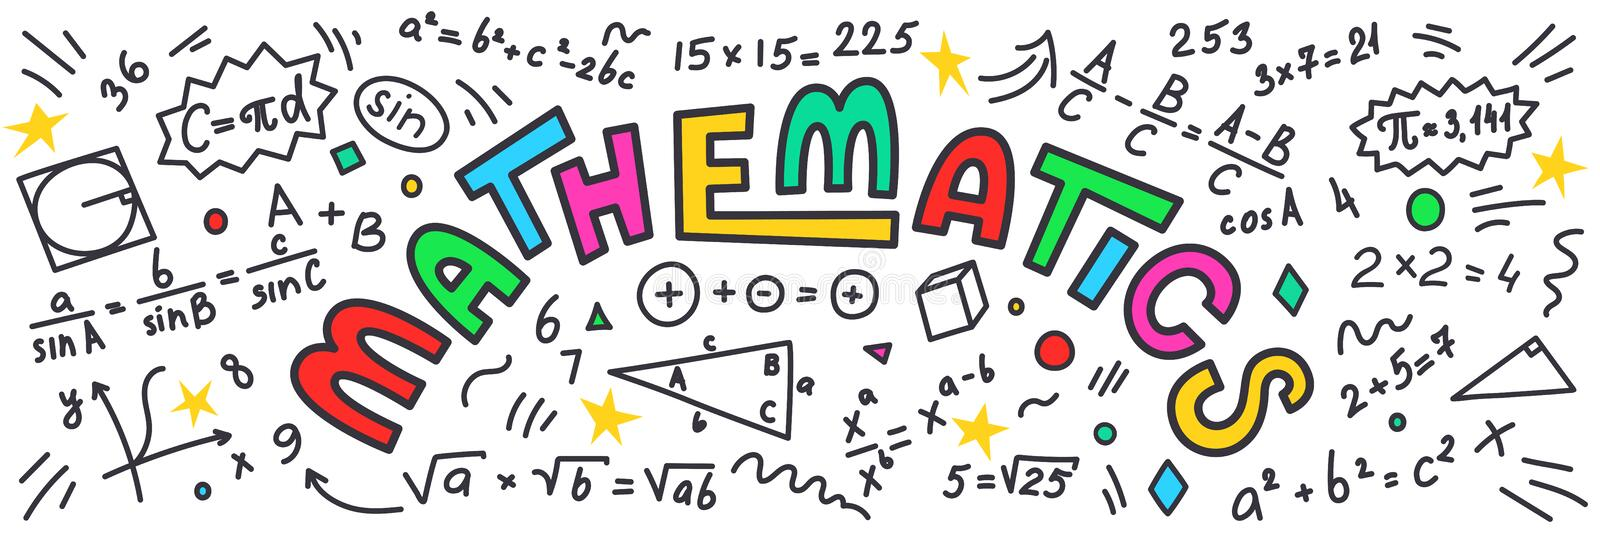 Maths Doodles Stock Illustrations – 50 Maths Doodles Stock ...